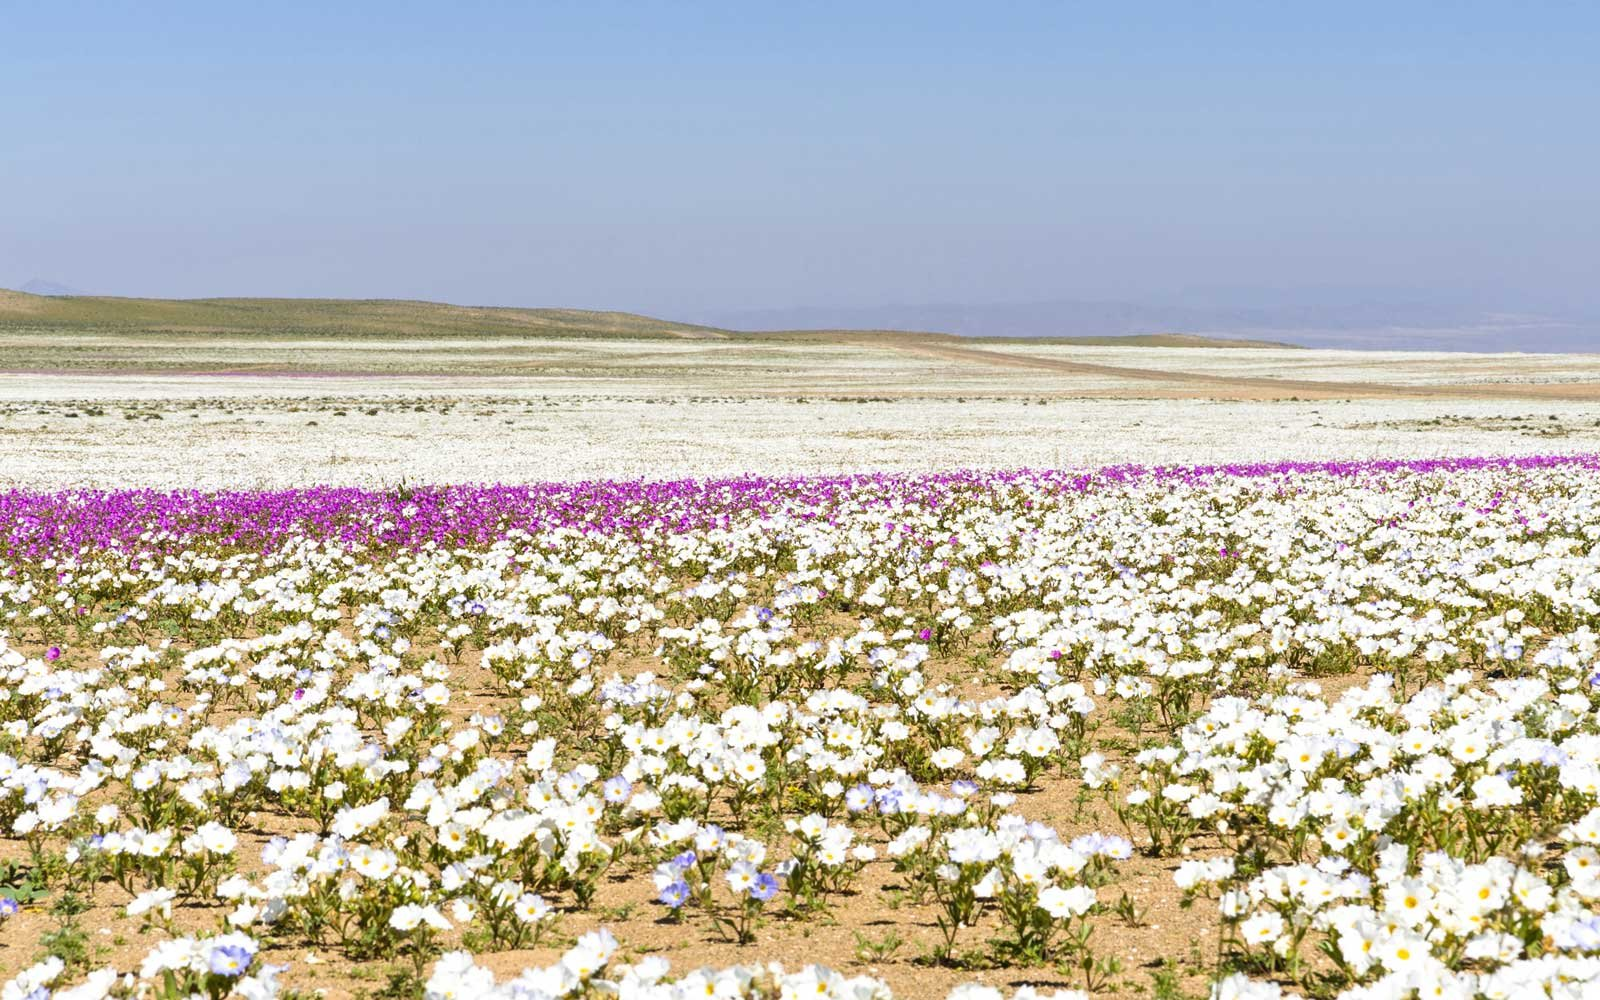 Flower Beds in the Atacama